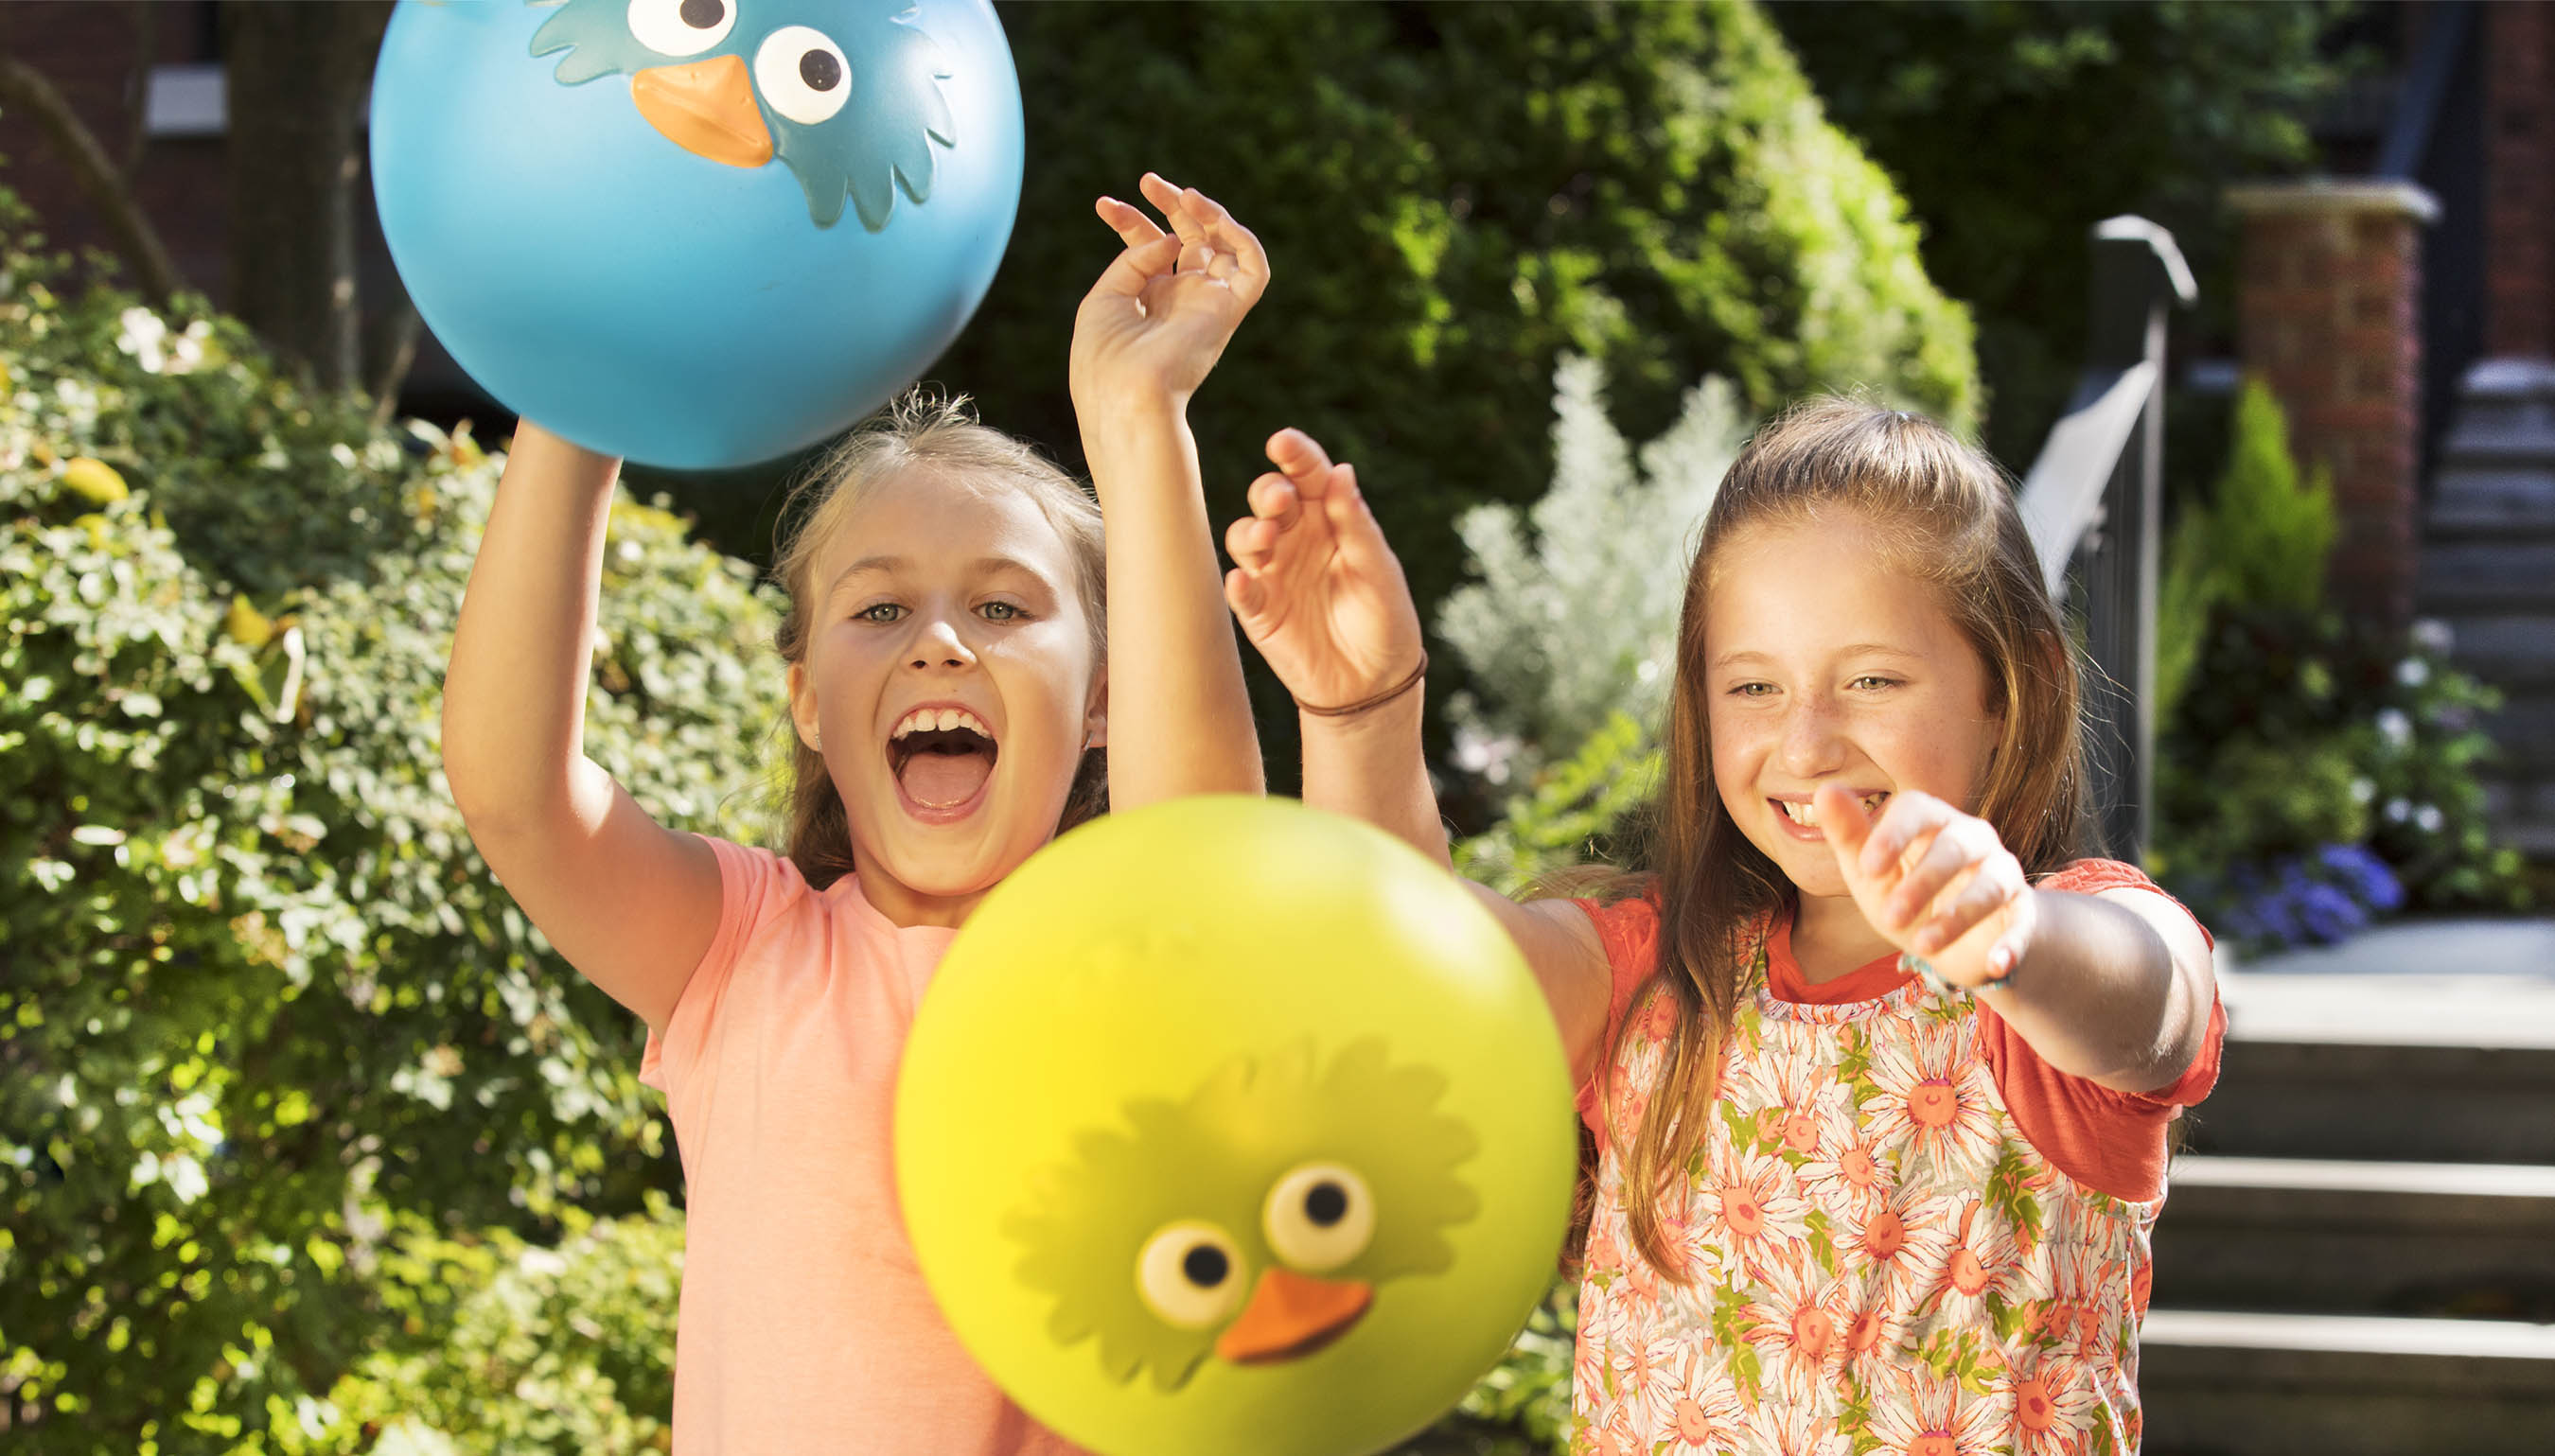 Two smiling girls playing with bird-inspired bouncy balls.